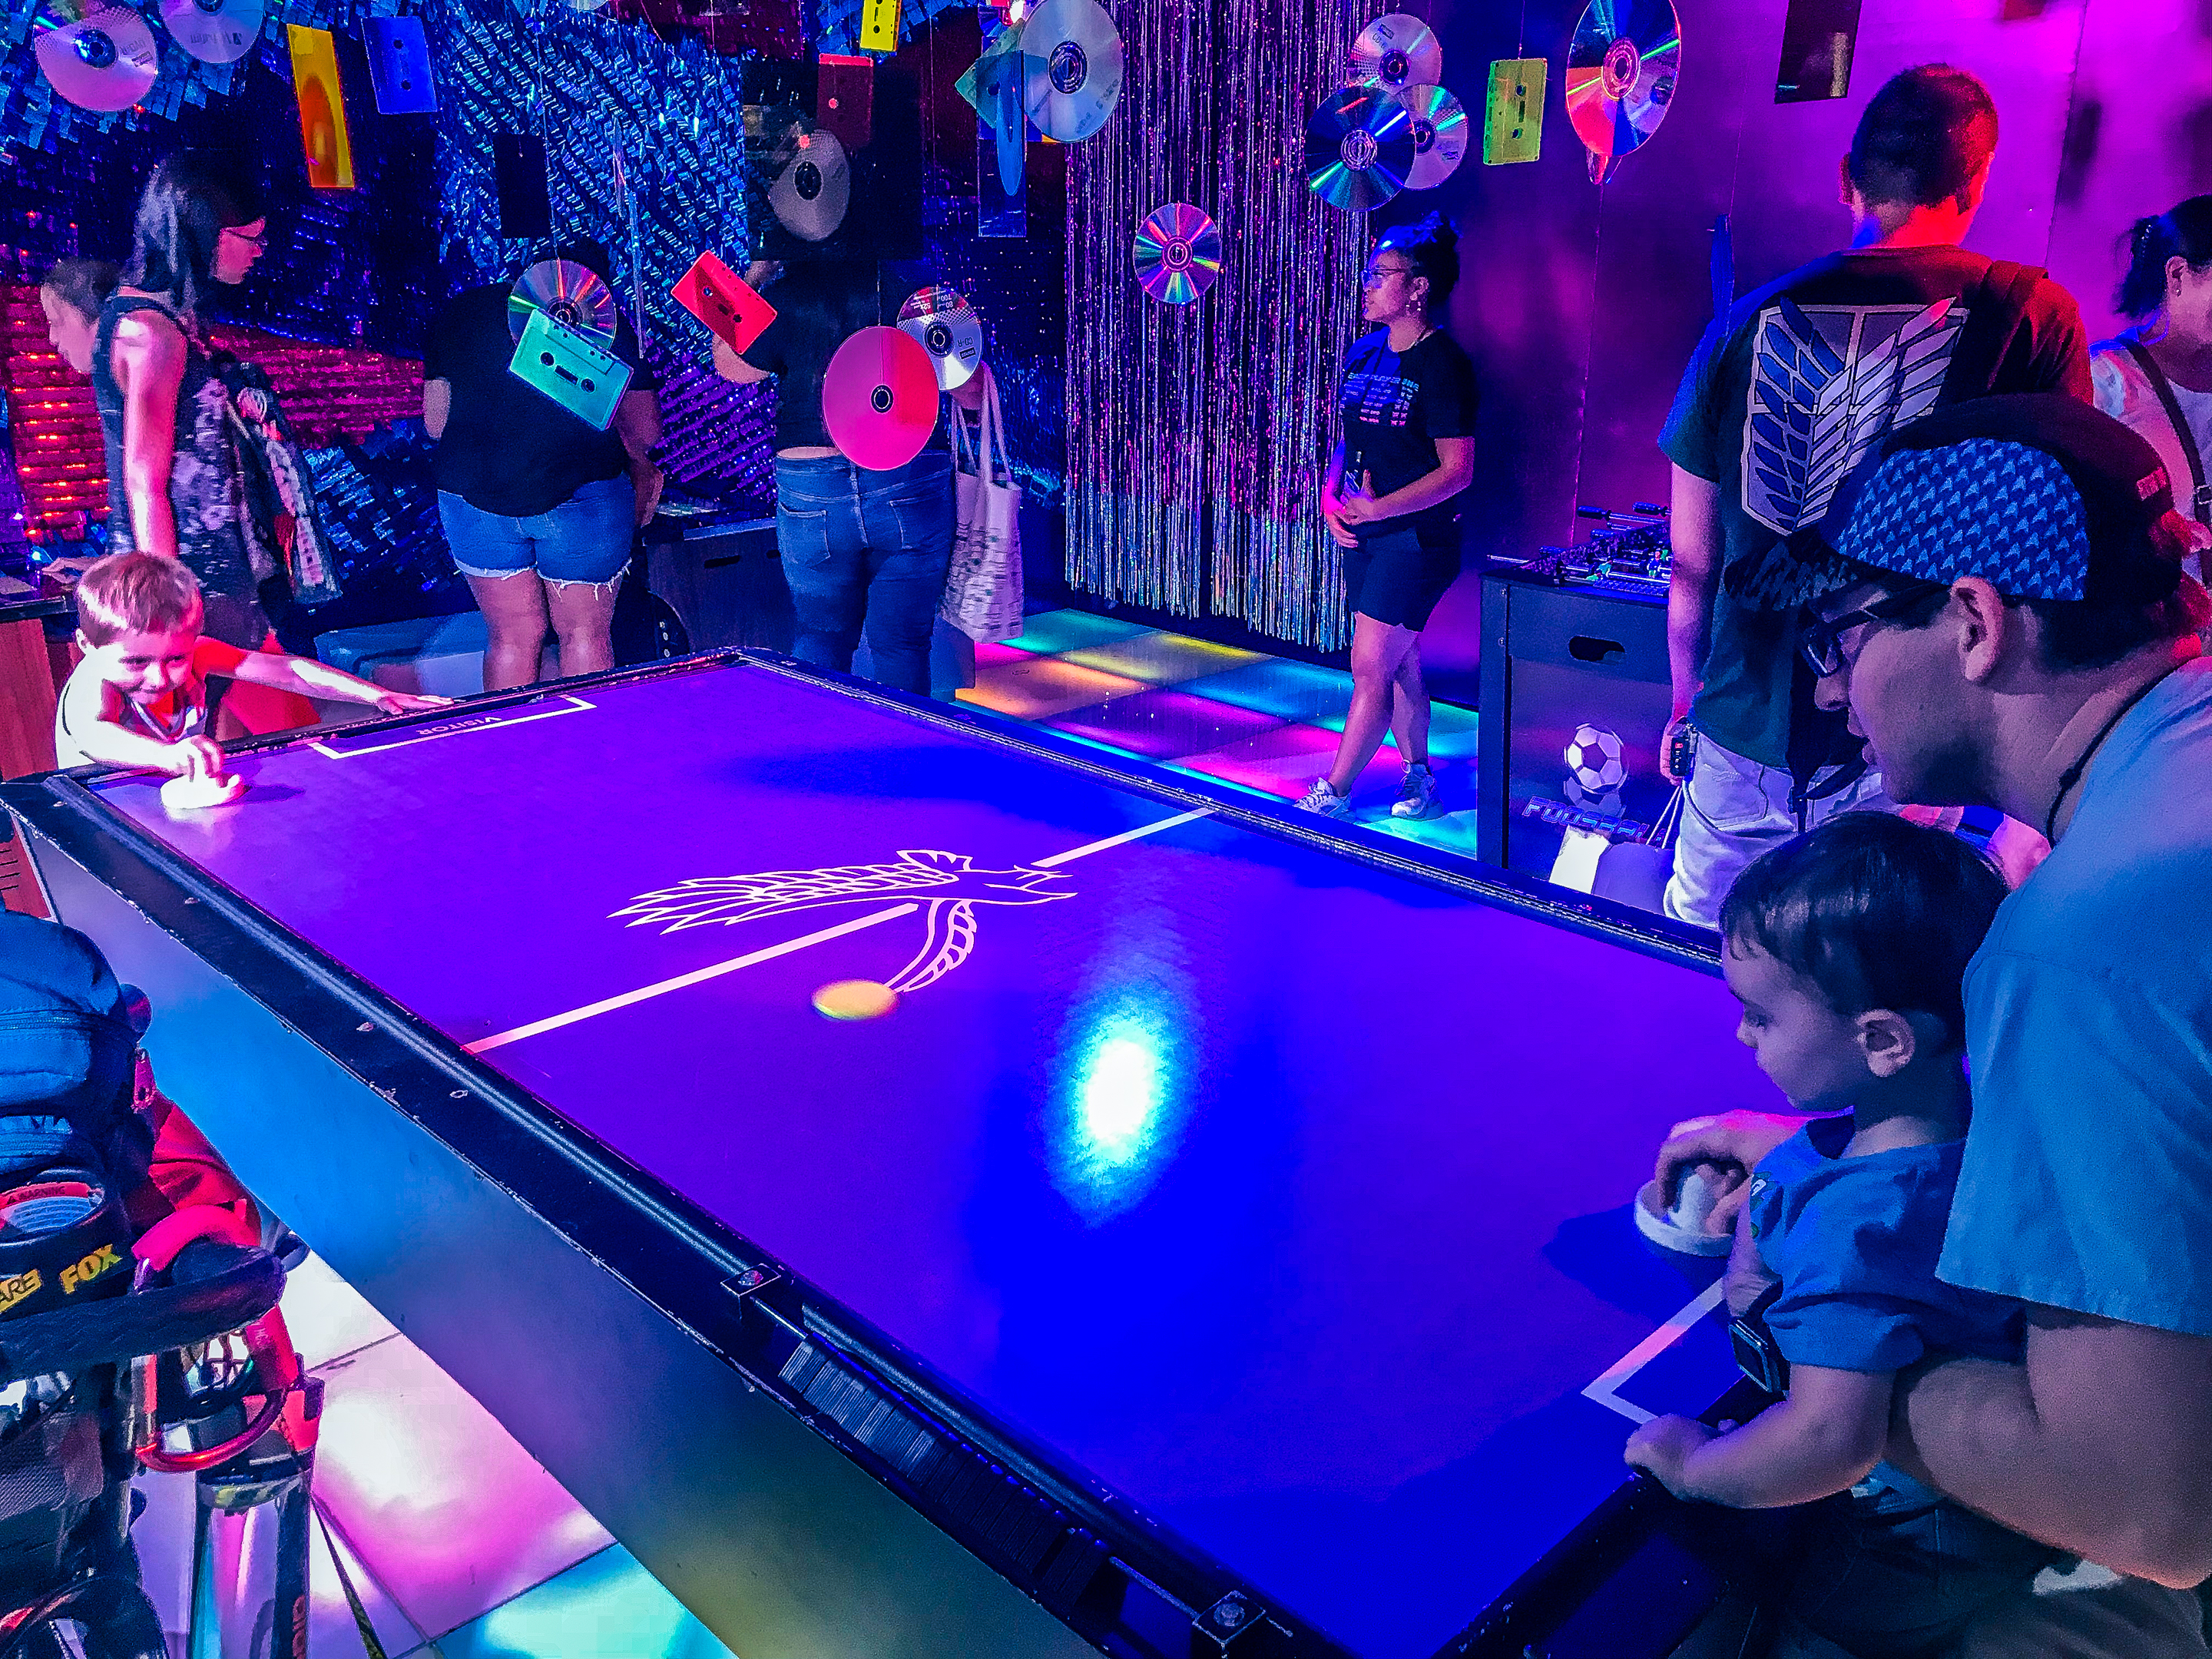 A family plays air hockey in a purple lit room, themed like Ready Player One at SDCC